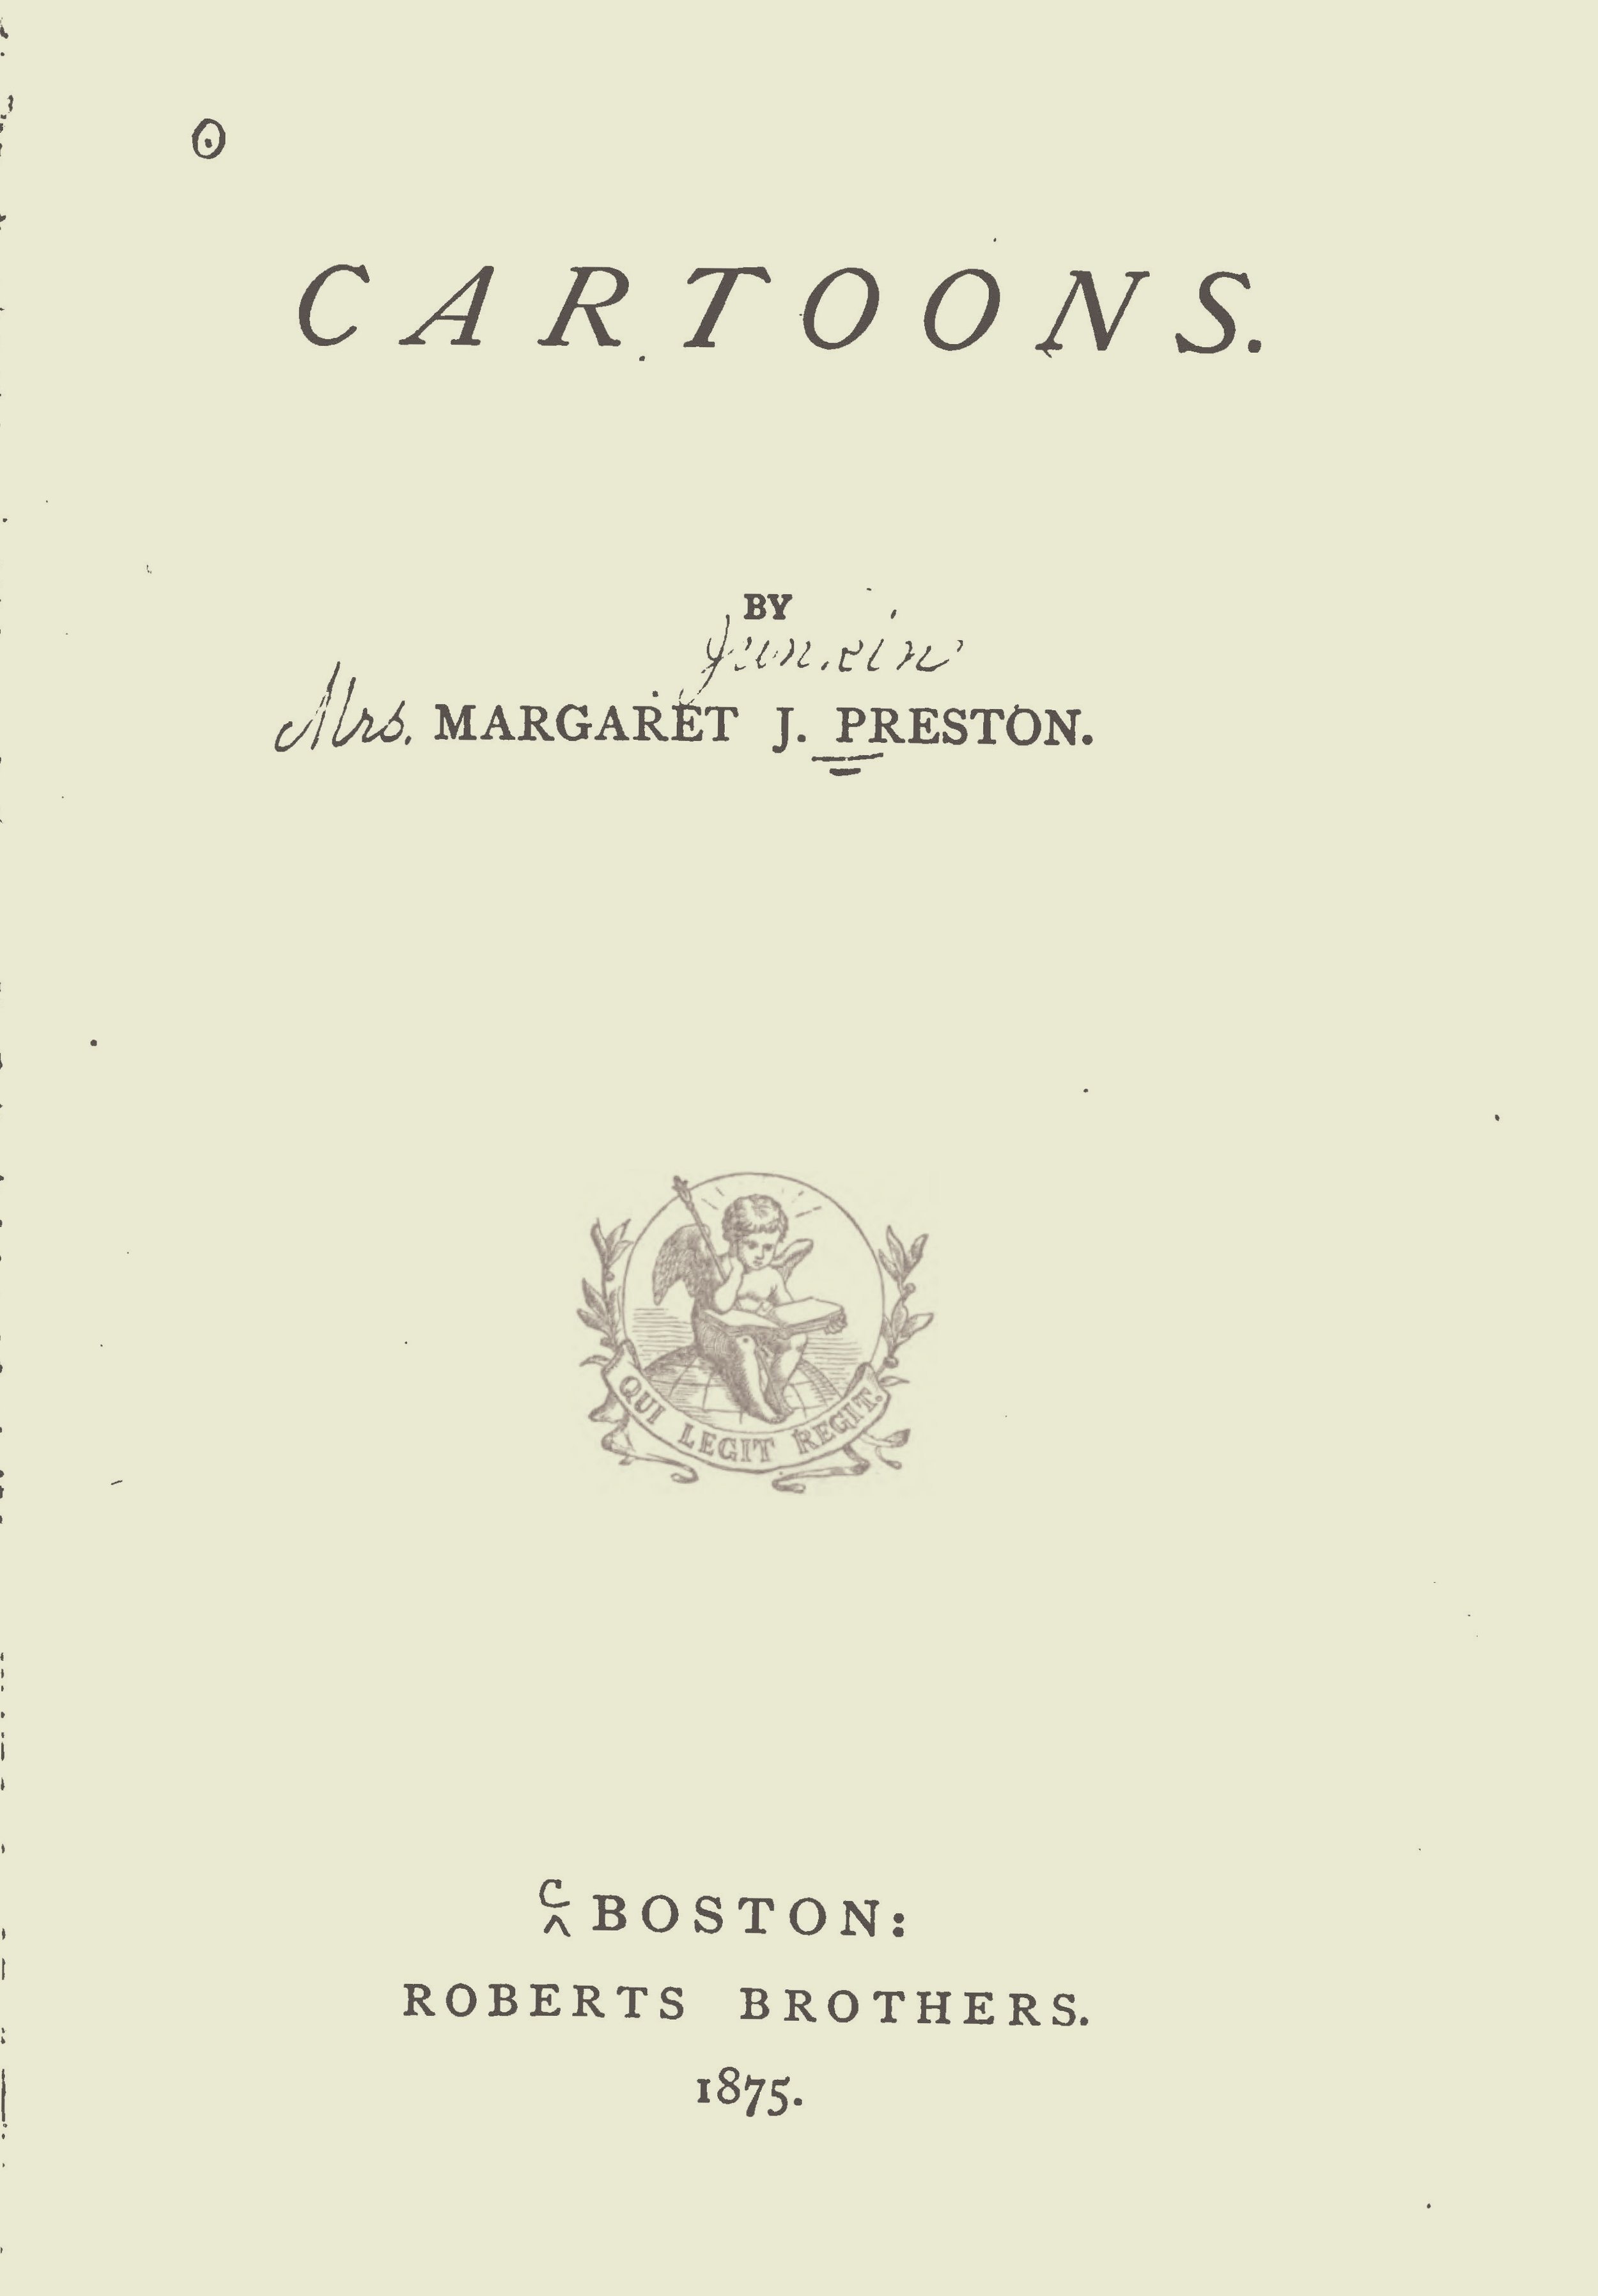 Preston, Margaret Junkin, Cartoons Title Page.jpg